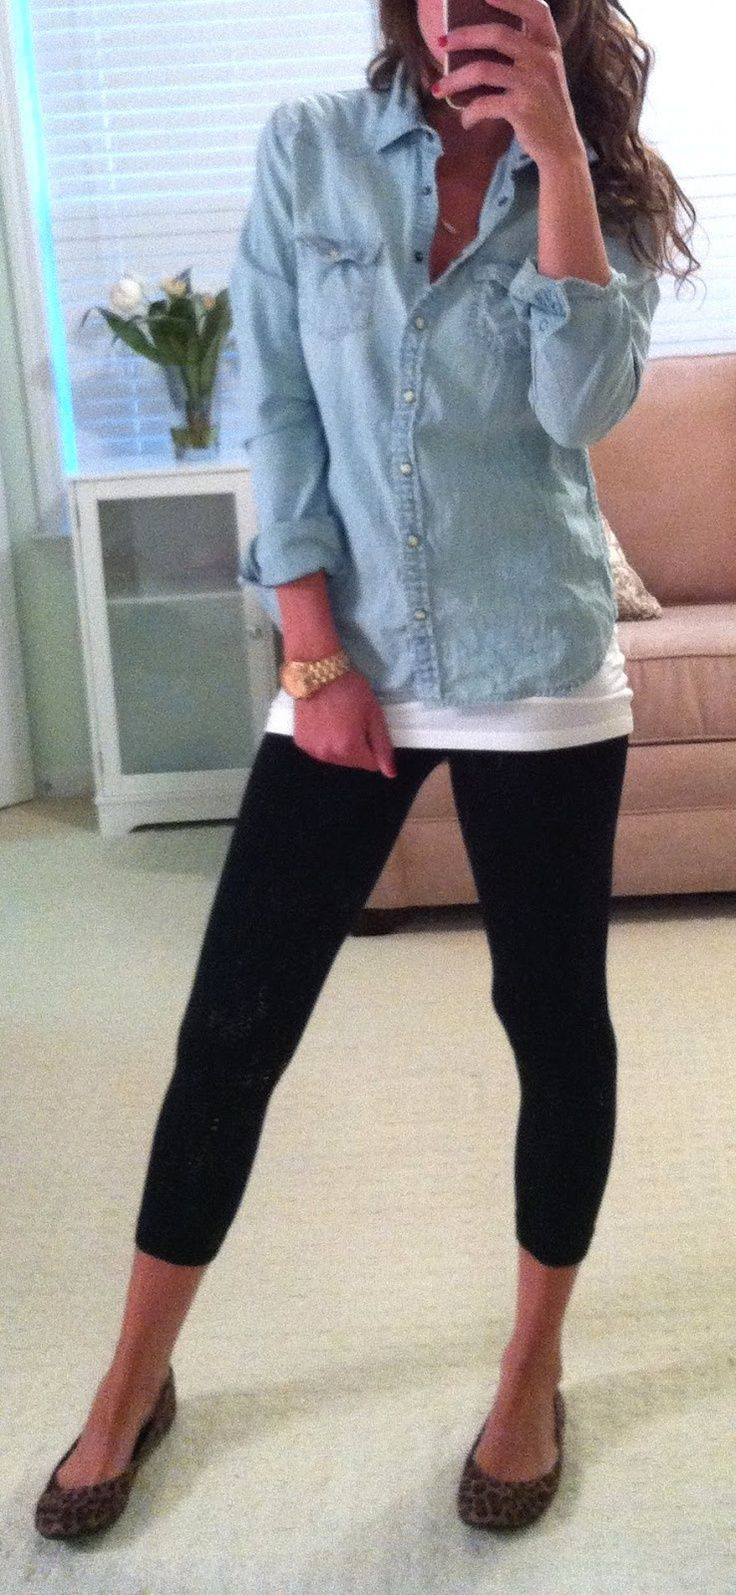 casual attire - denim button up, leggings and cheetah flats